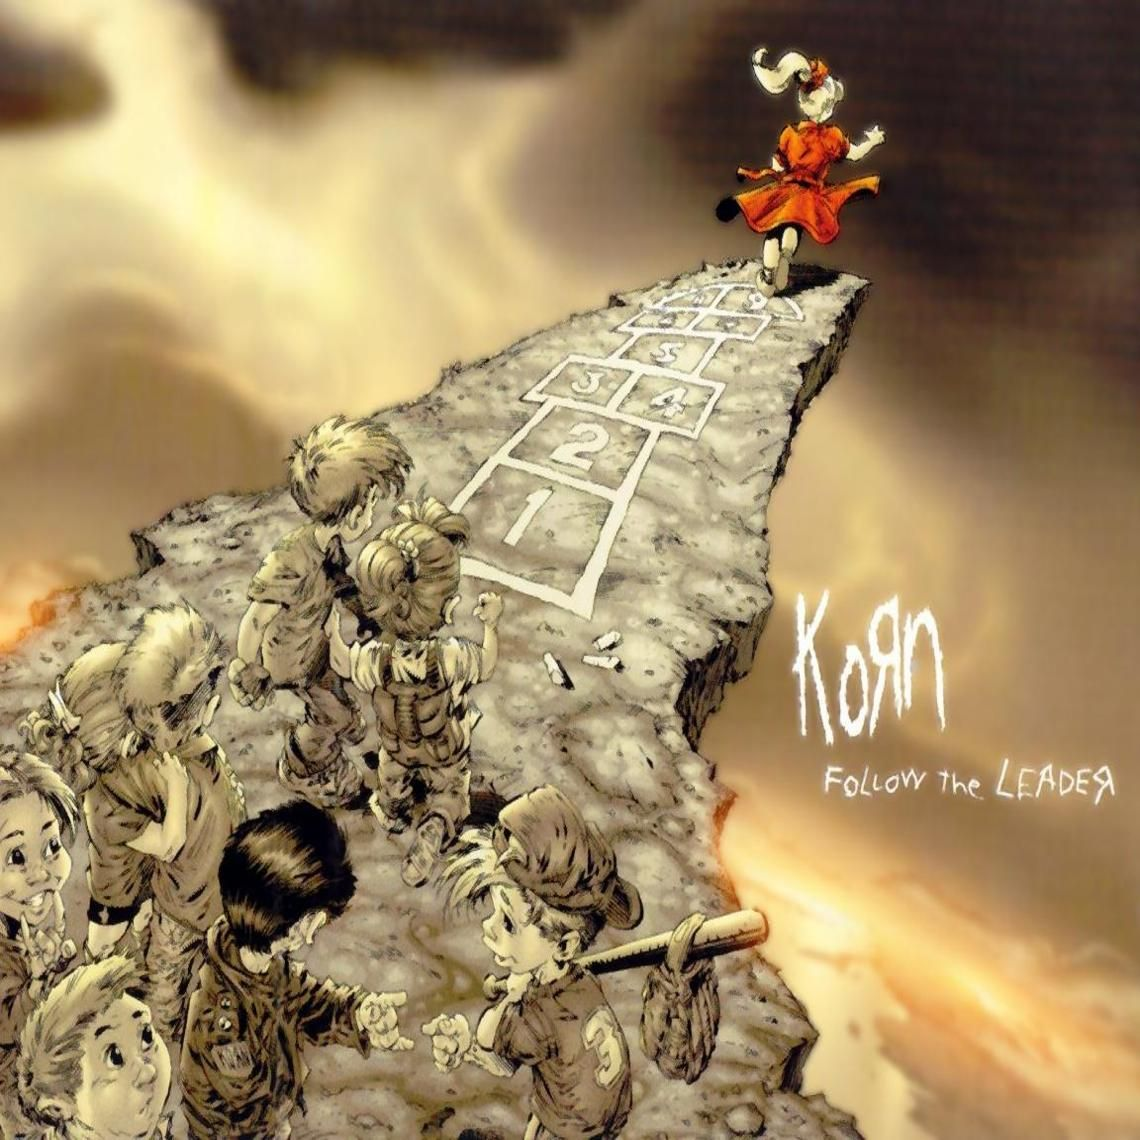 Korn Follow The Leader Korn Album Art Album Covers